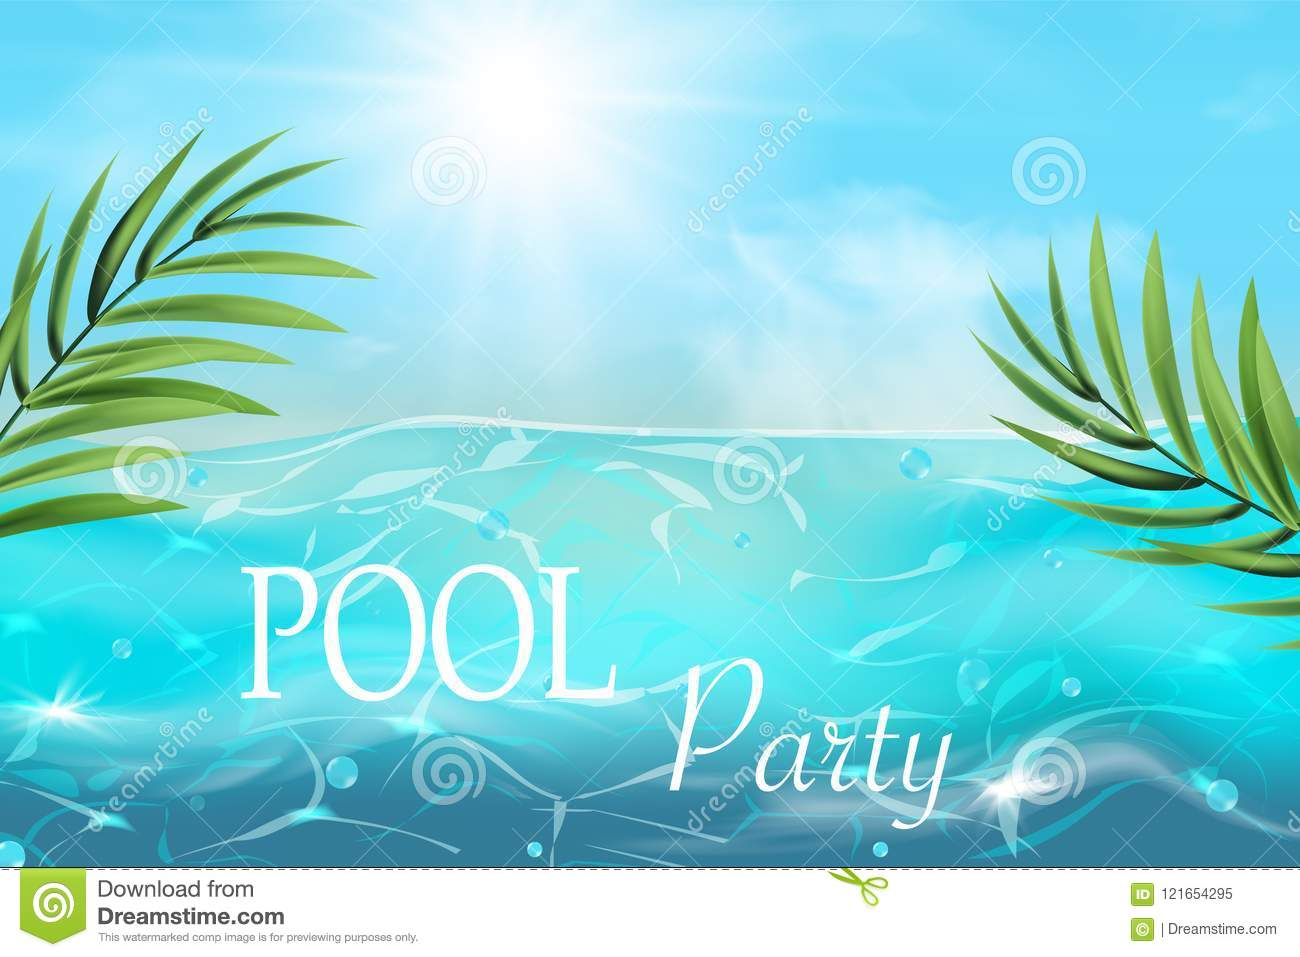 Pool Party Invitation Royalty Free Stock Image